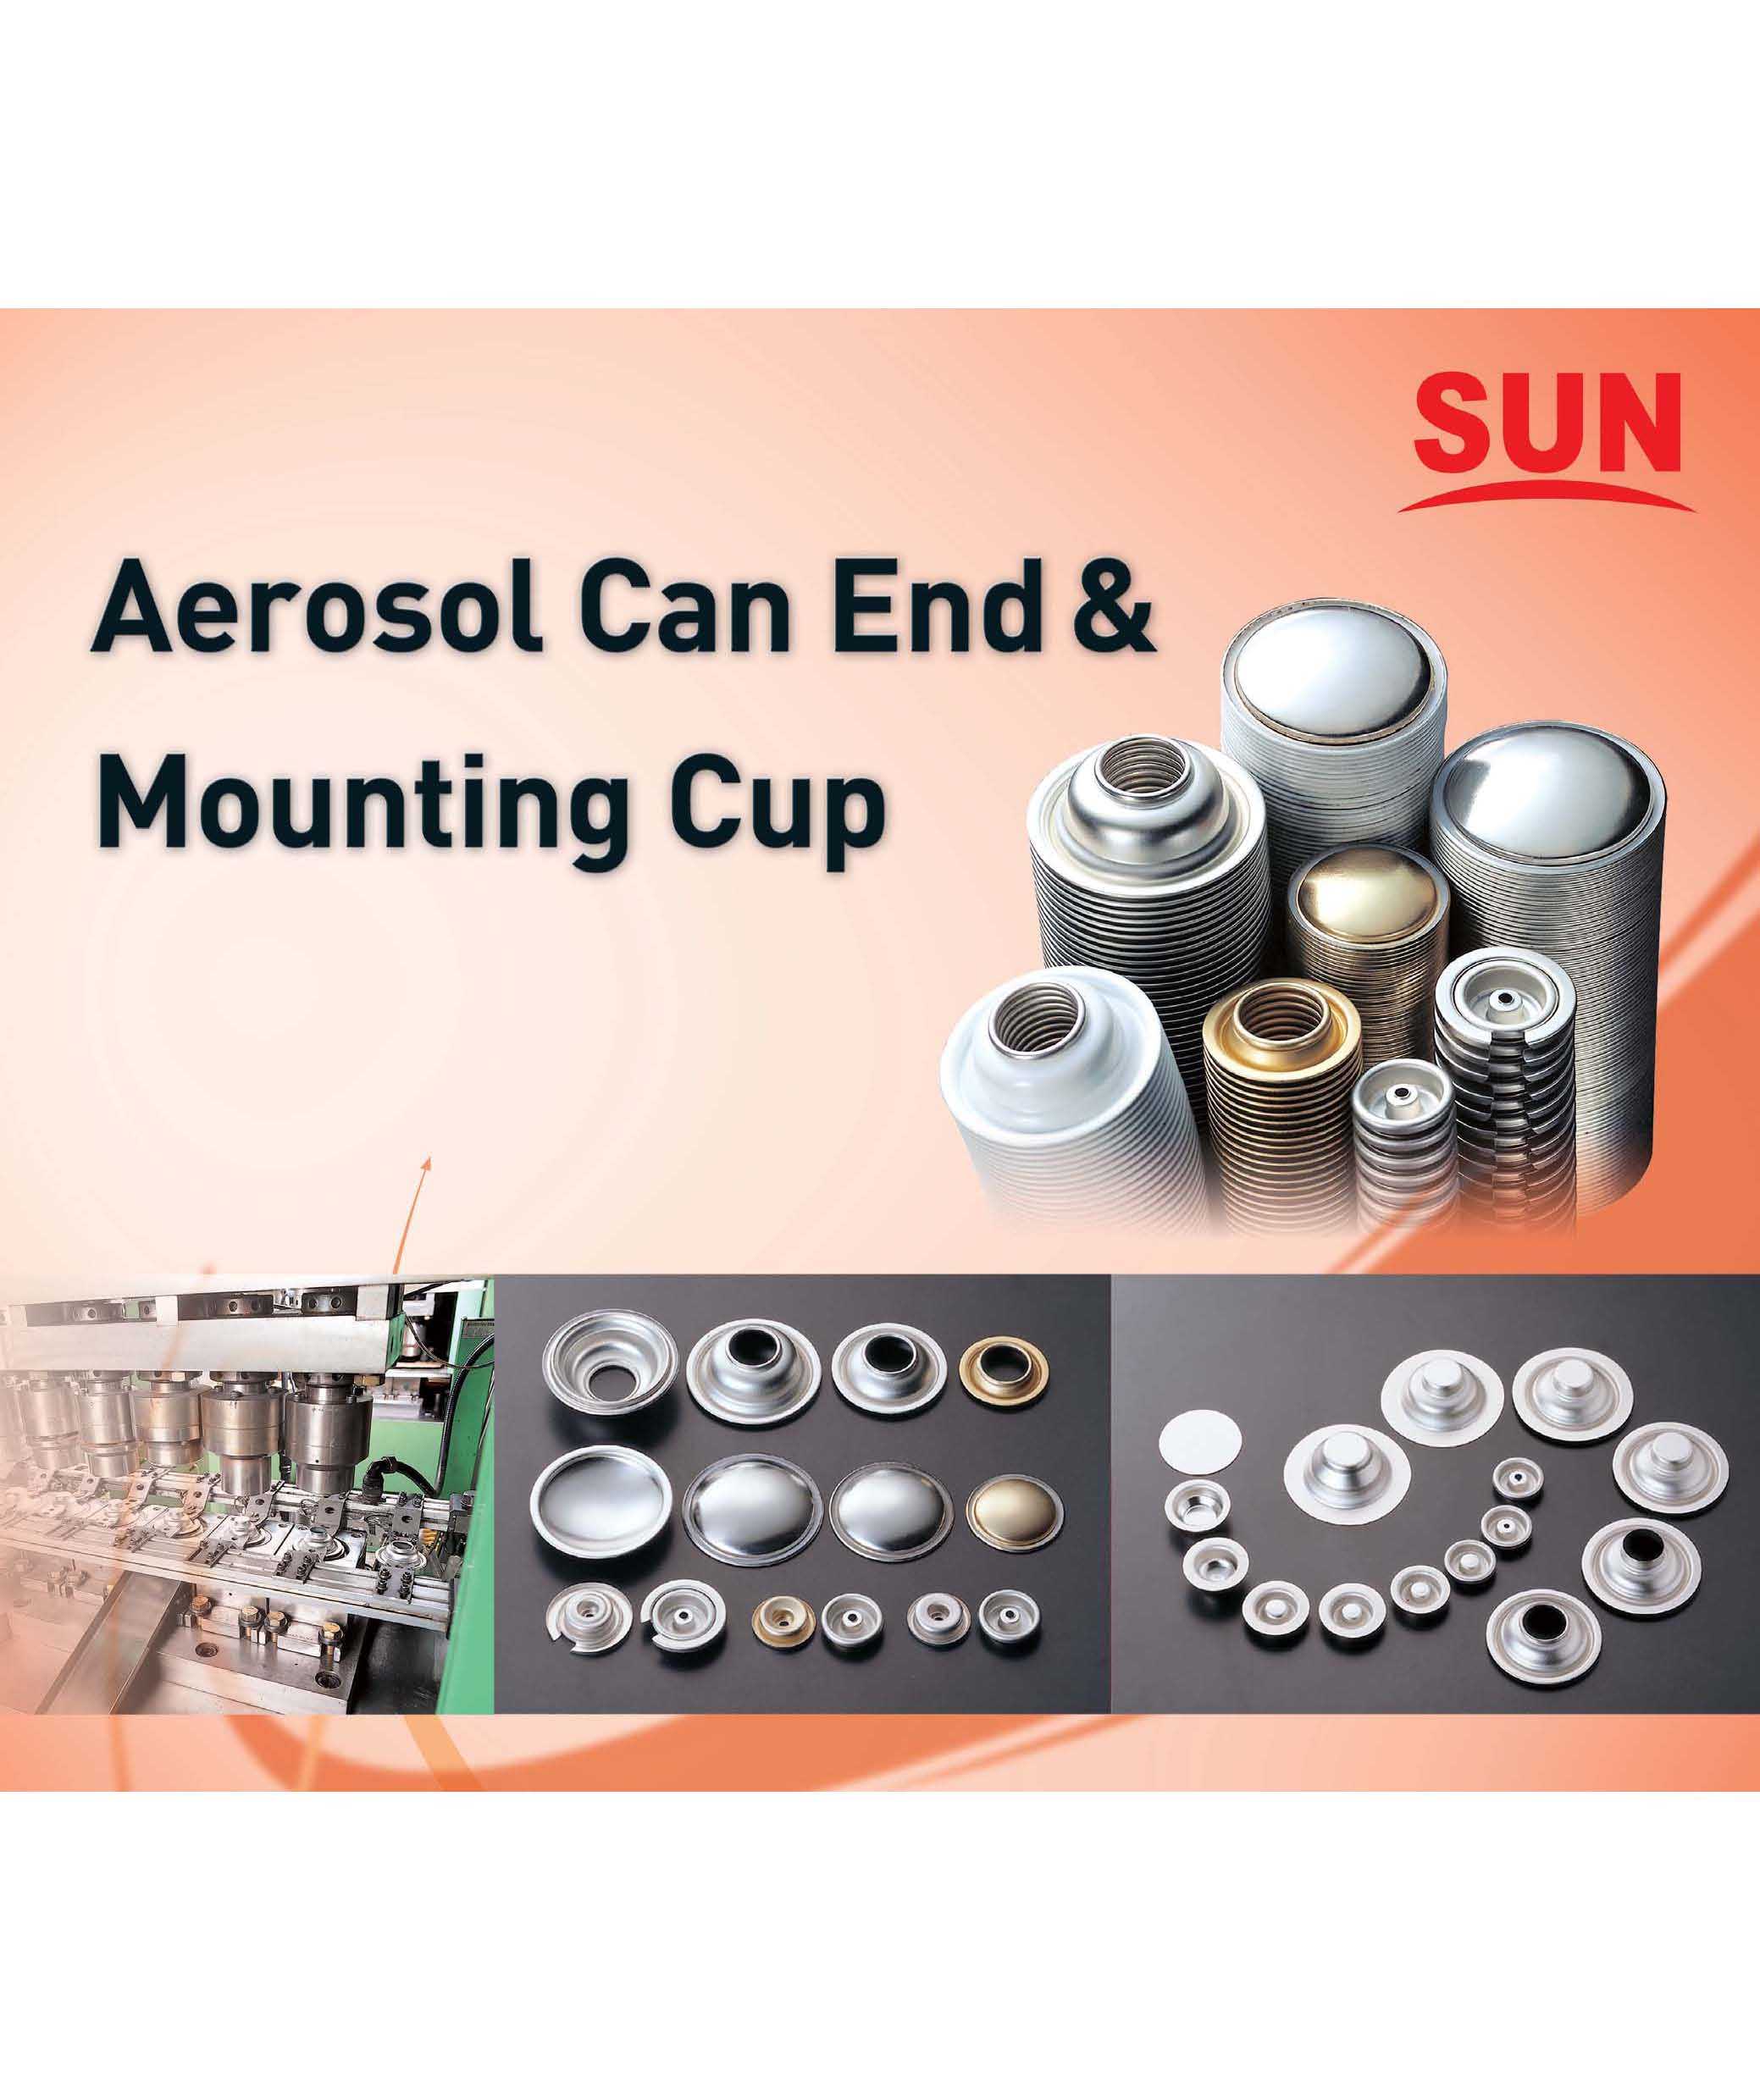 AEROSOL CAN END & MOUNTING CUP